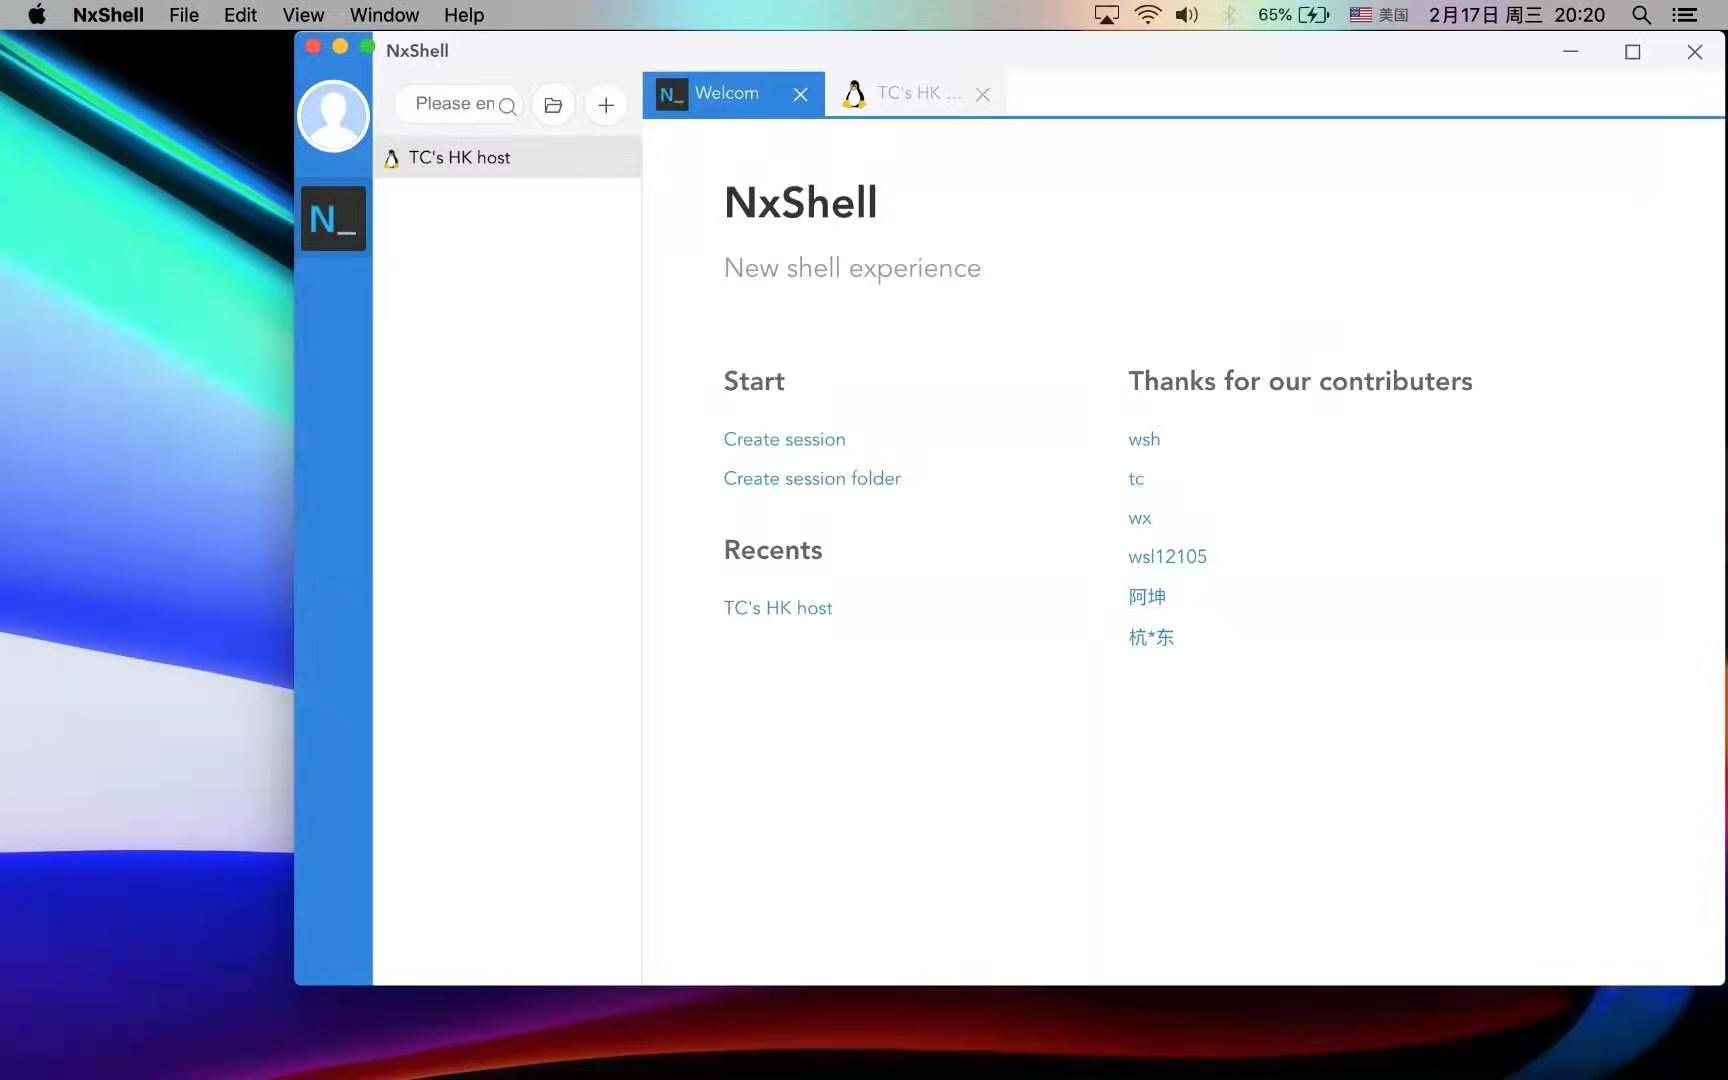 NxShell-how-to-use-it